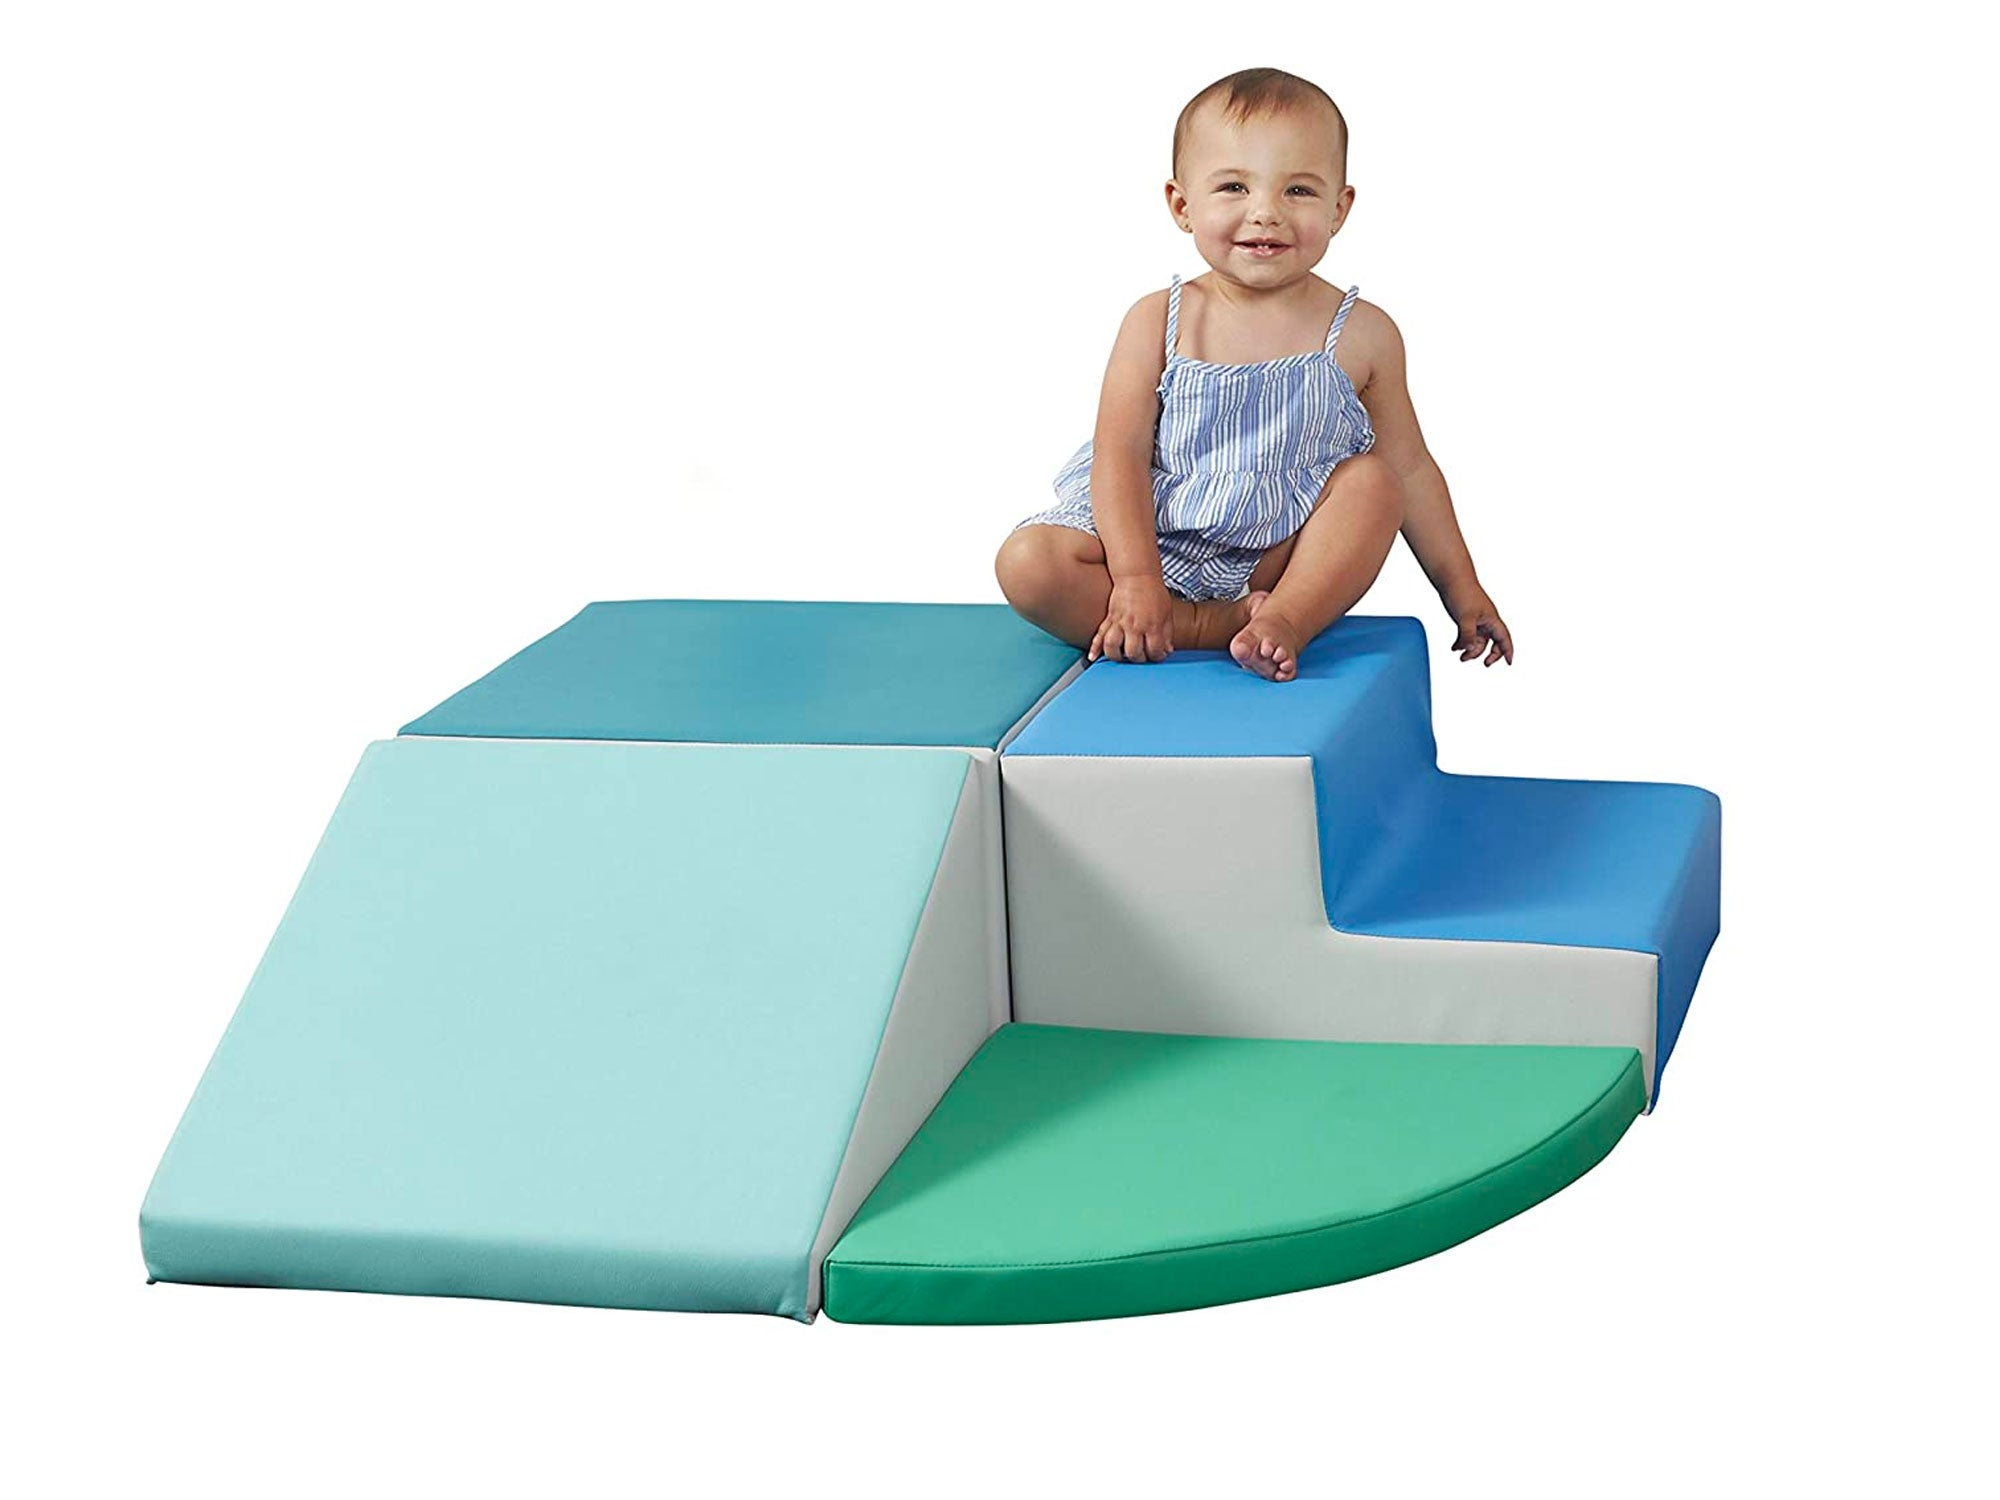 SoftScape Toddler Playtime Corner Climber, Indoor Active Play Structure for Toddlers and Kids, Safe Soft Foam for Crawling and Sliding